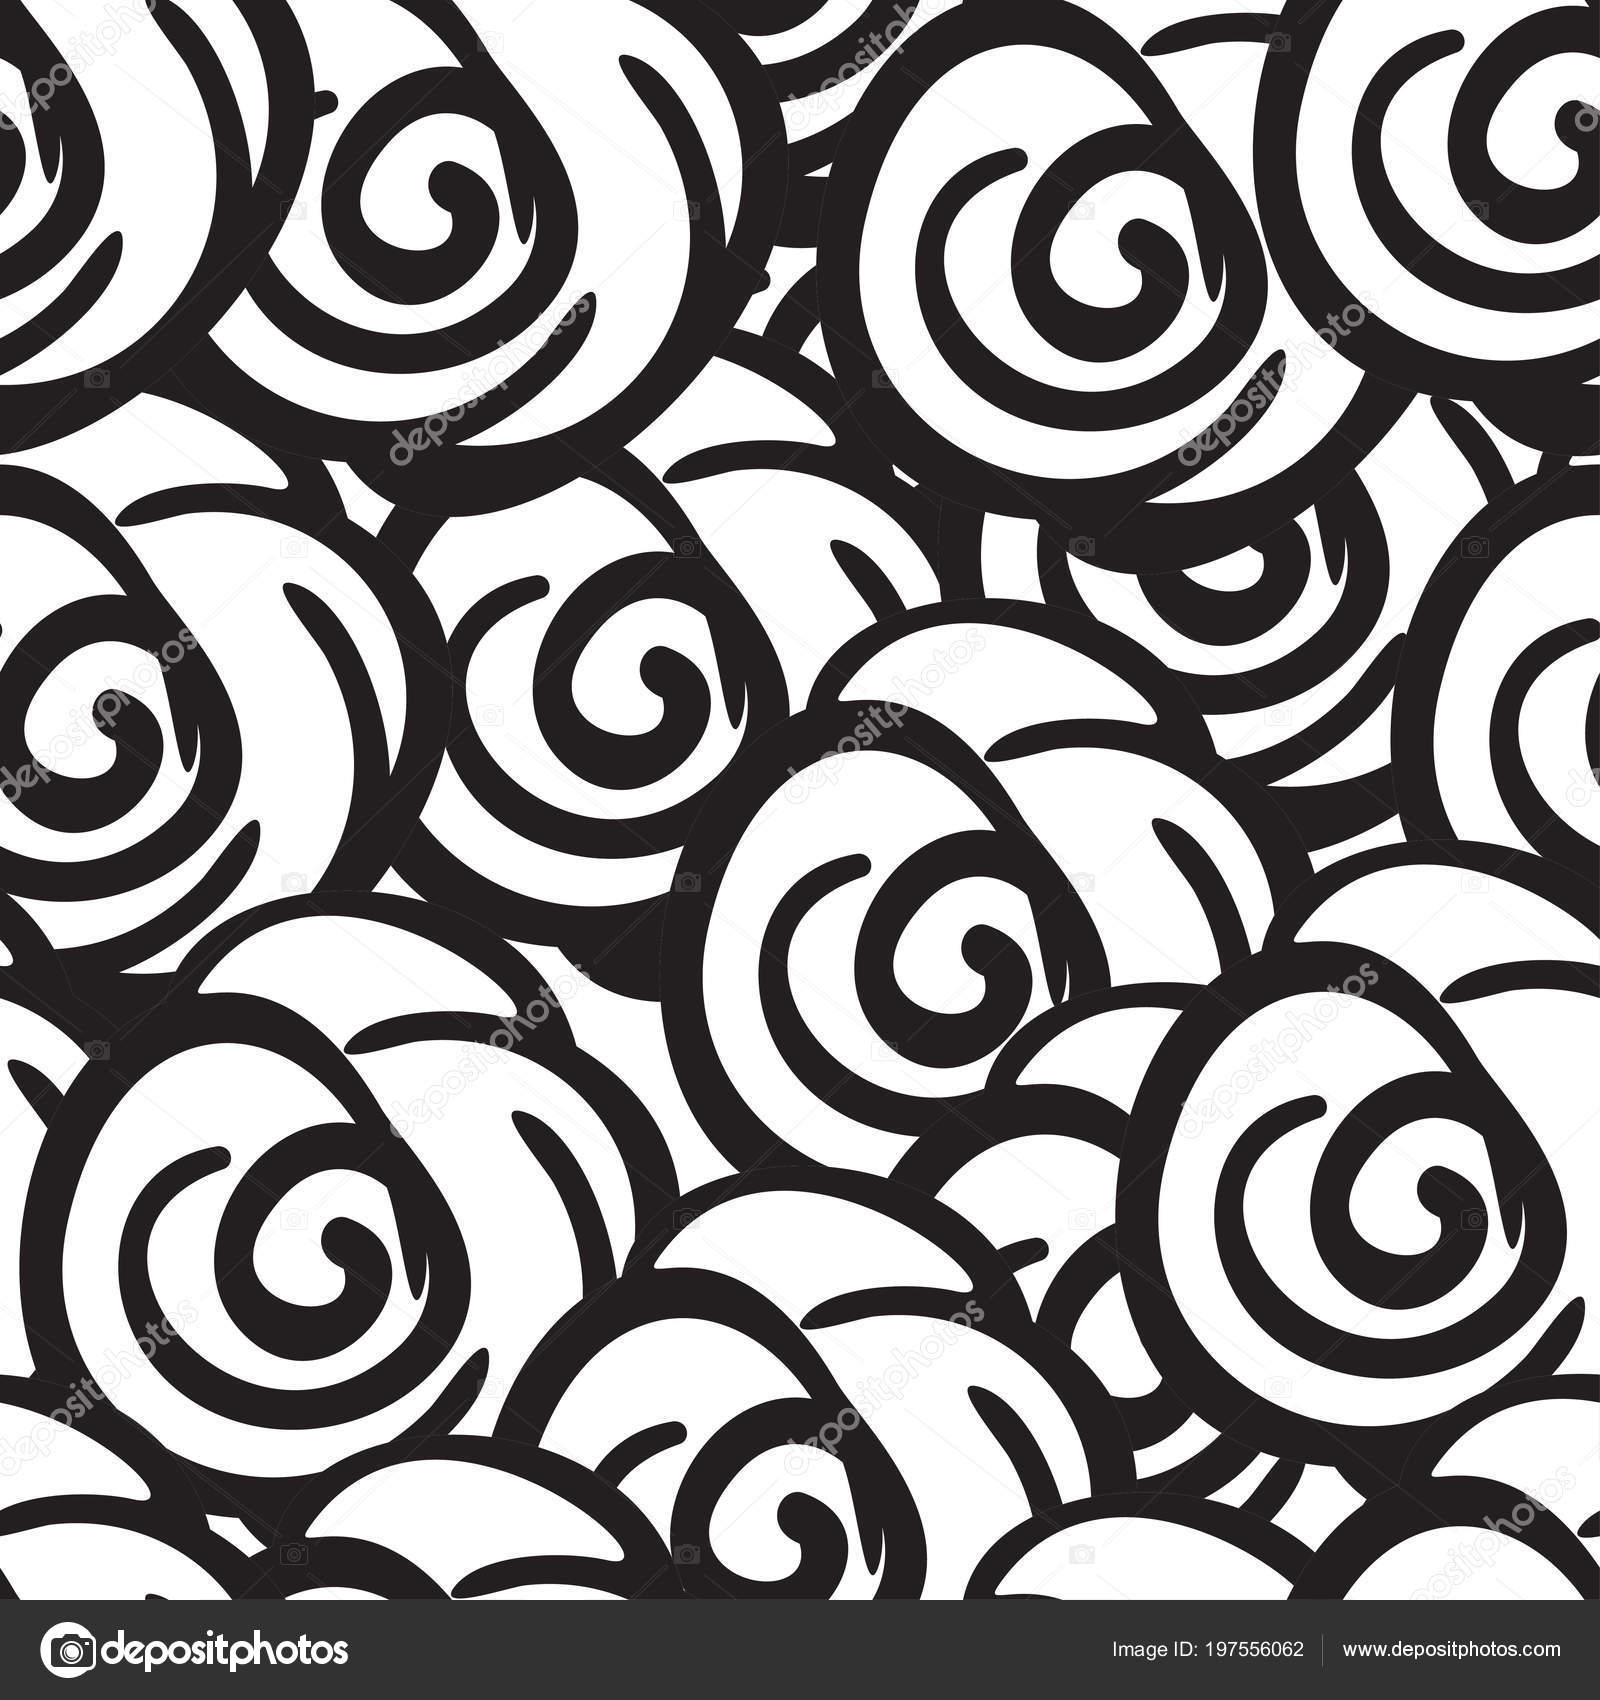 Black And White Rose Flowers Seamless Digital Hand Drawn Ink Pattern